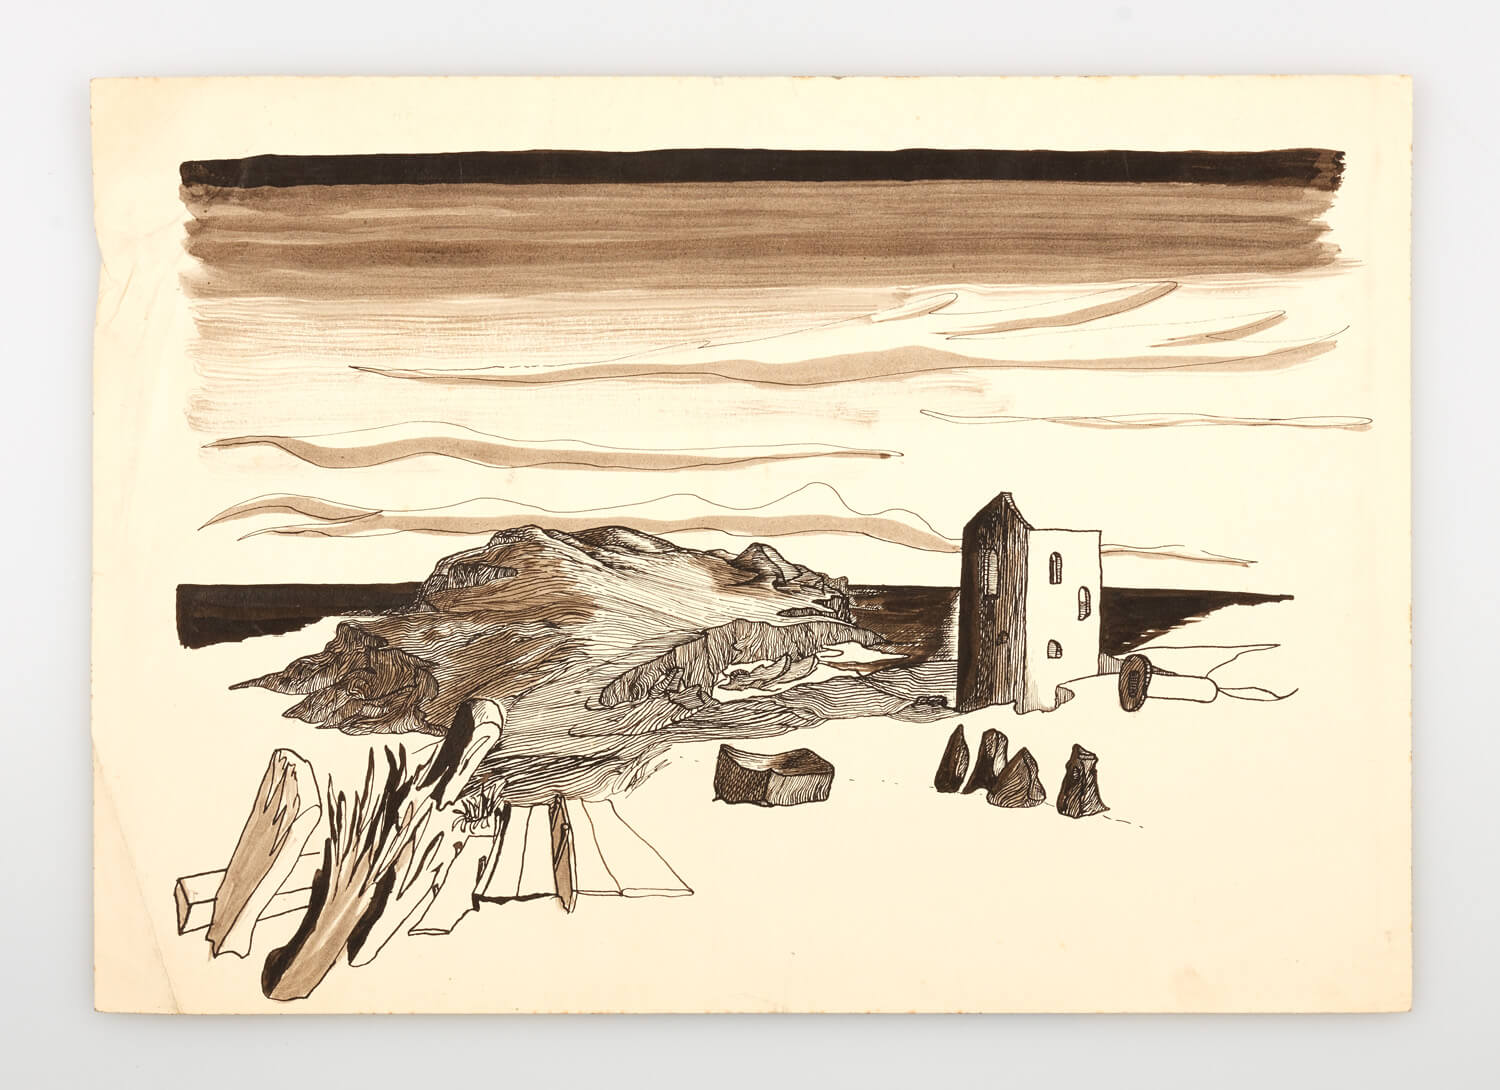 JB252 - Cornish Landscape - 1946 - 25 x 35.5 cm - Pen and ink